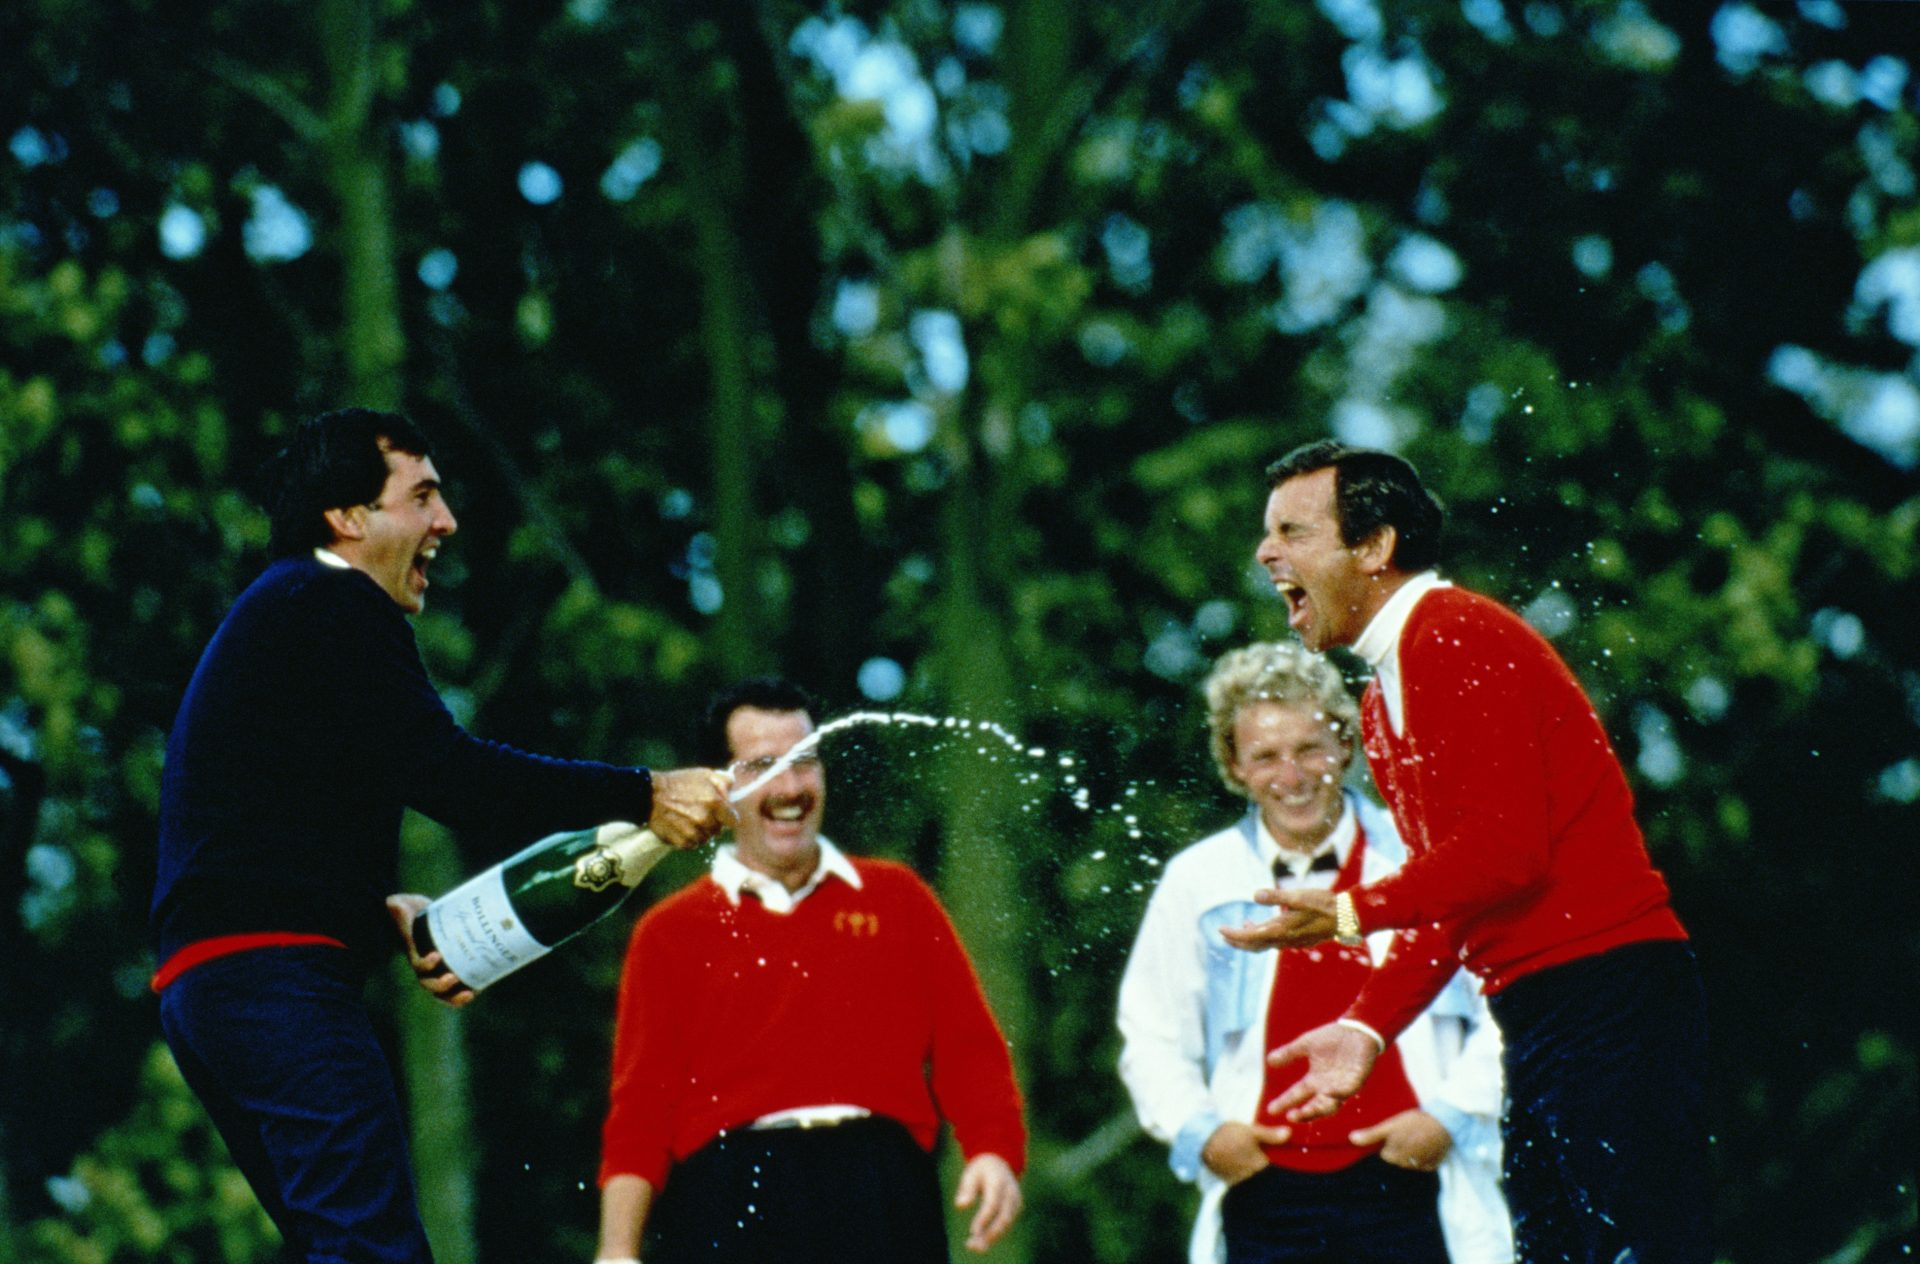 Seve Ballesteros, Sam Torrance, Bernhard Langer and Team Europe captain Tony Jacklin celebrate victory at The Belfry in 1985 – but success did not always come so readily. Credit: David Cannon/Getty Images